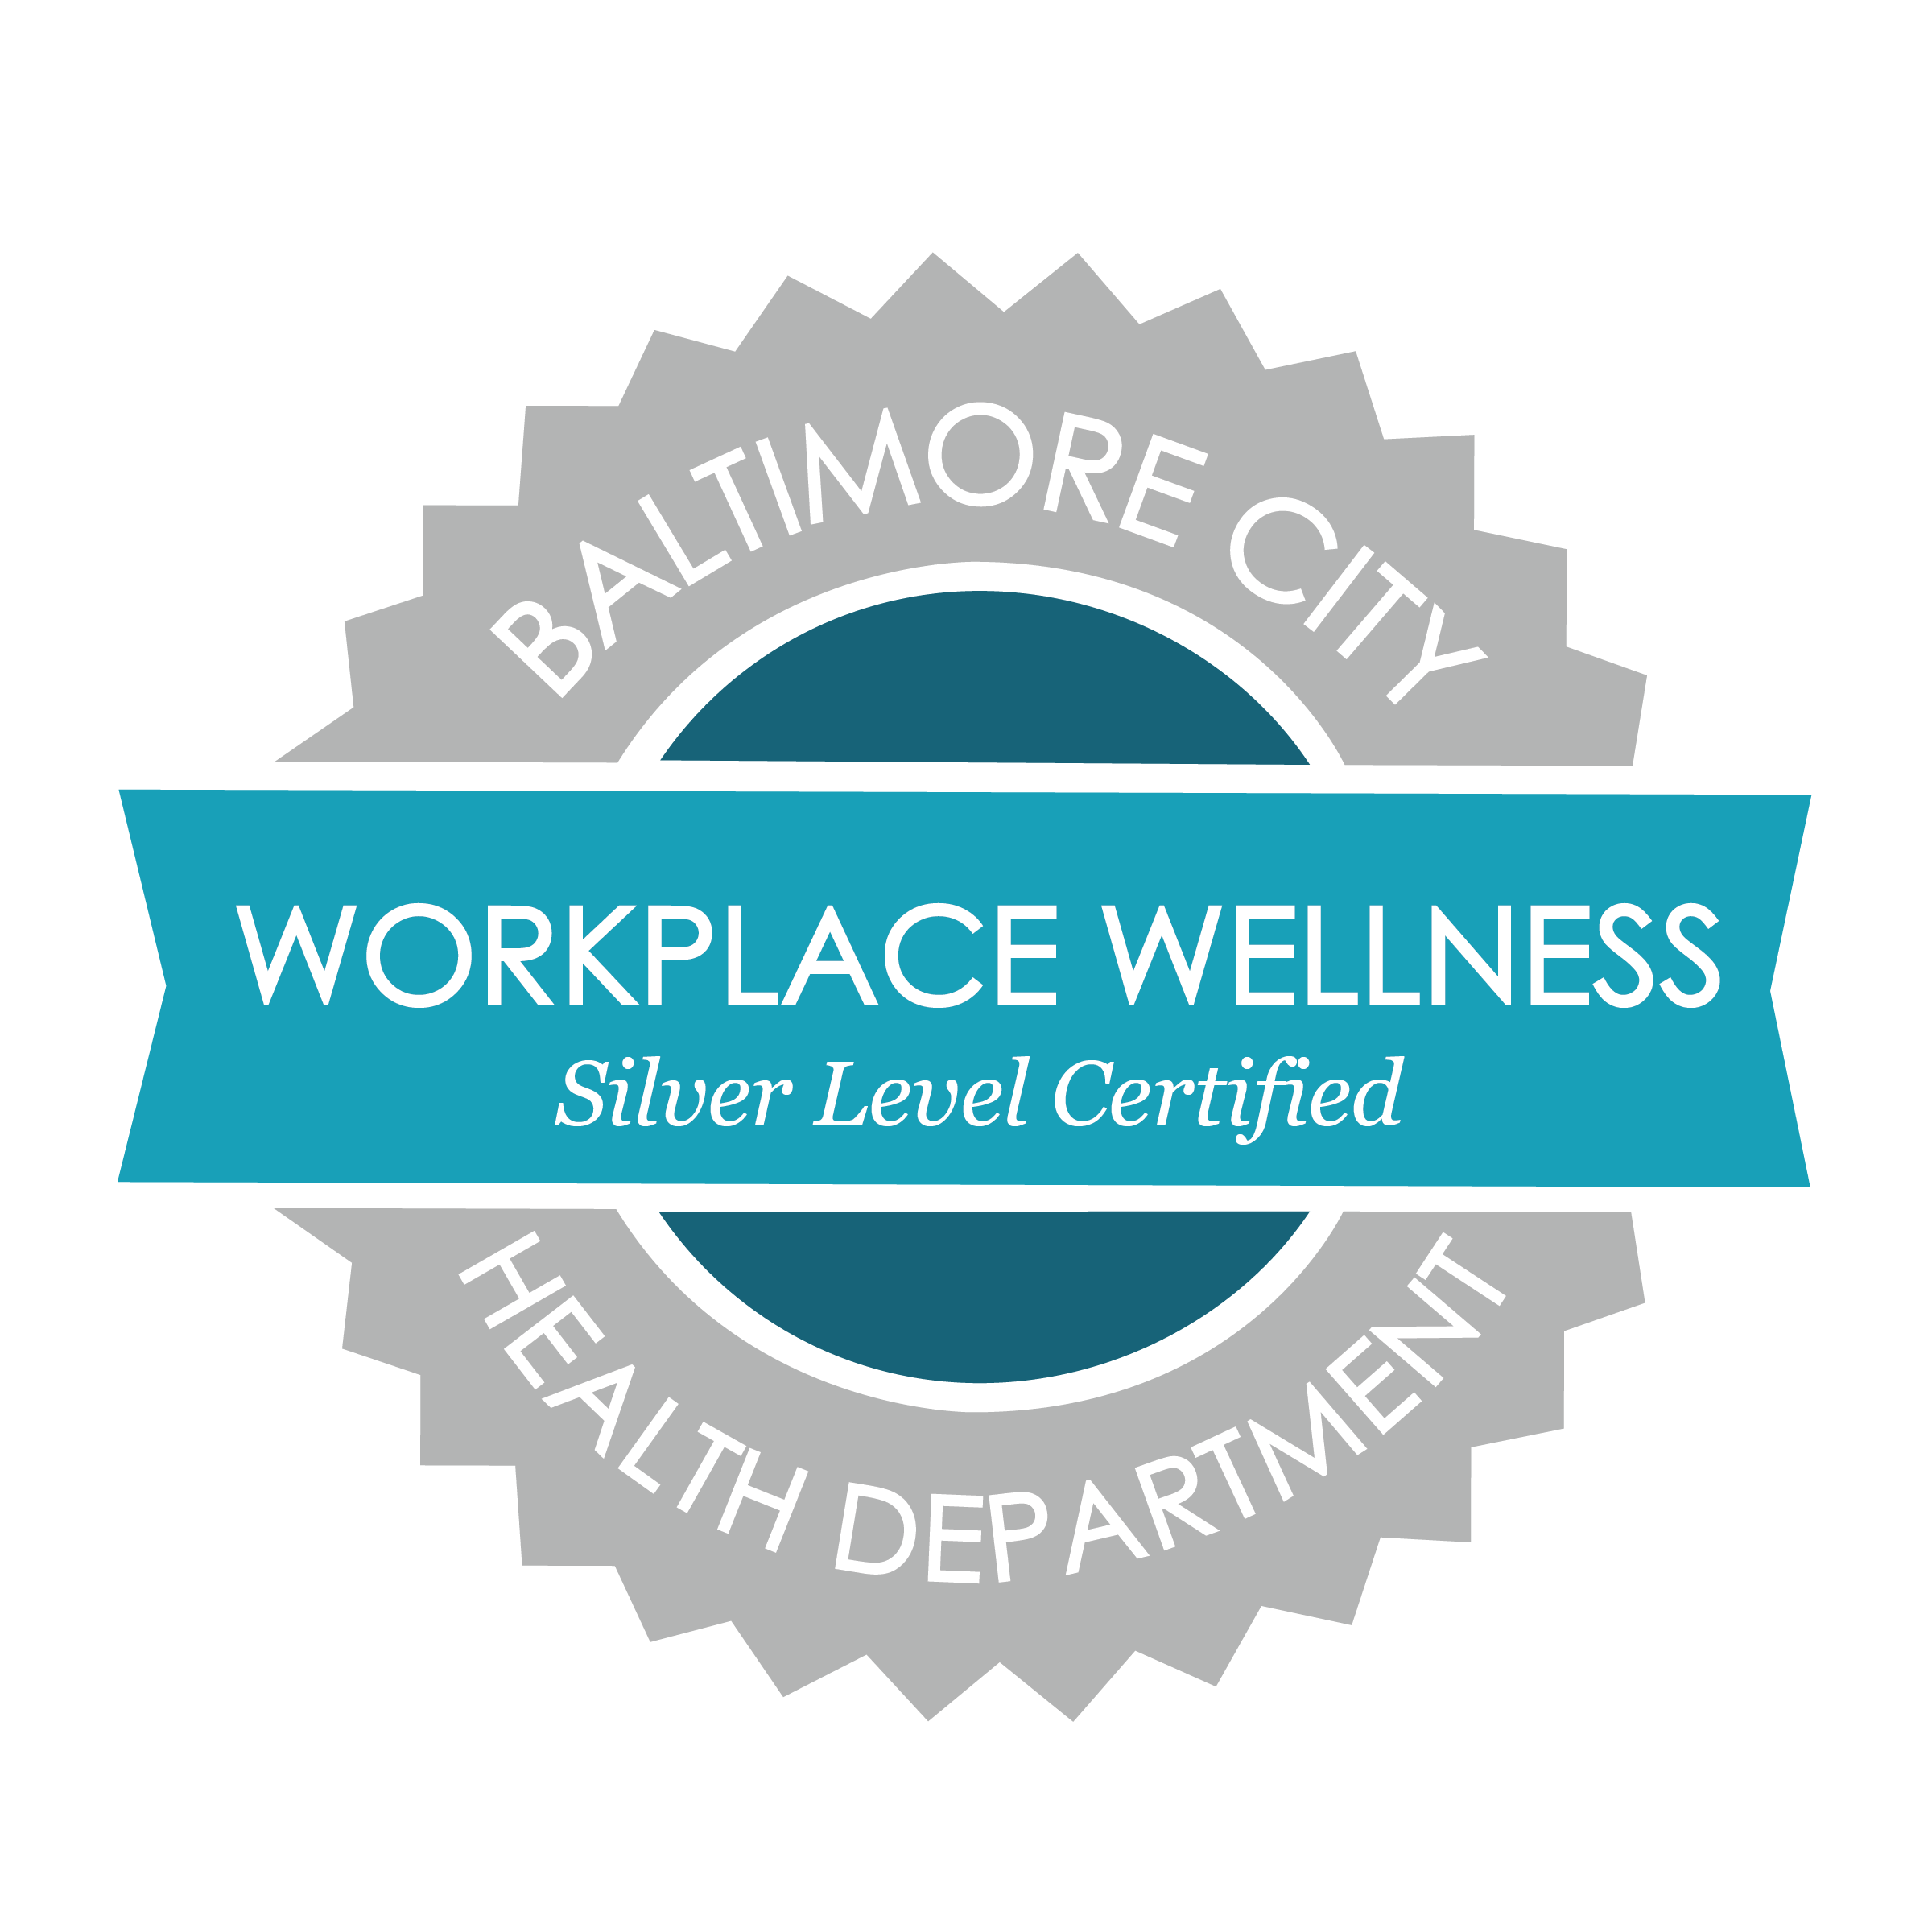 Silver Level Certified Workplace Wellness Designation